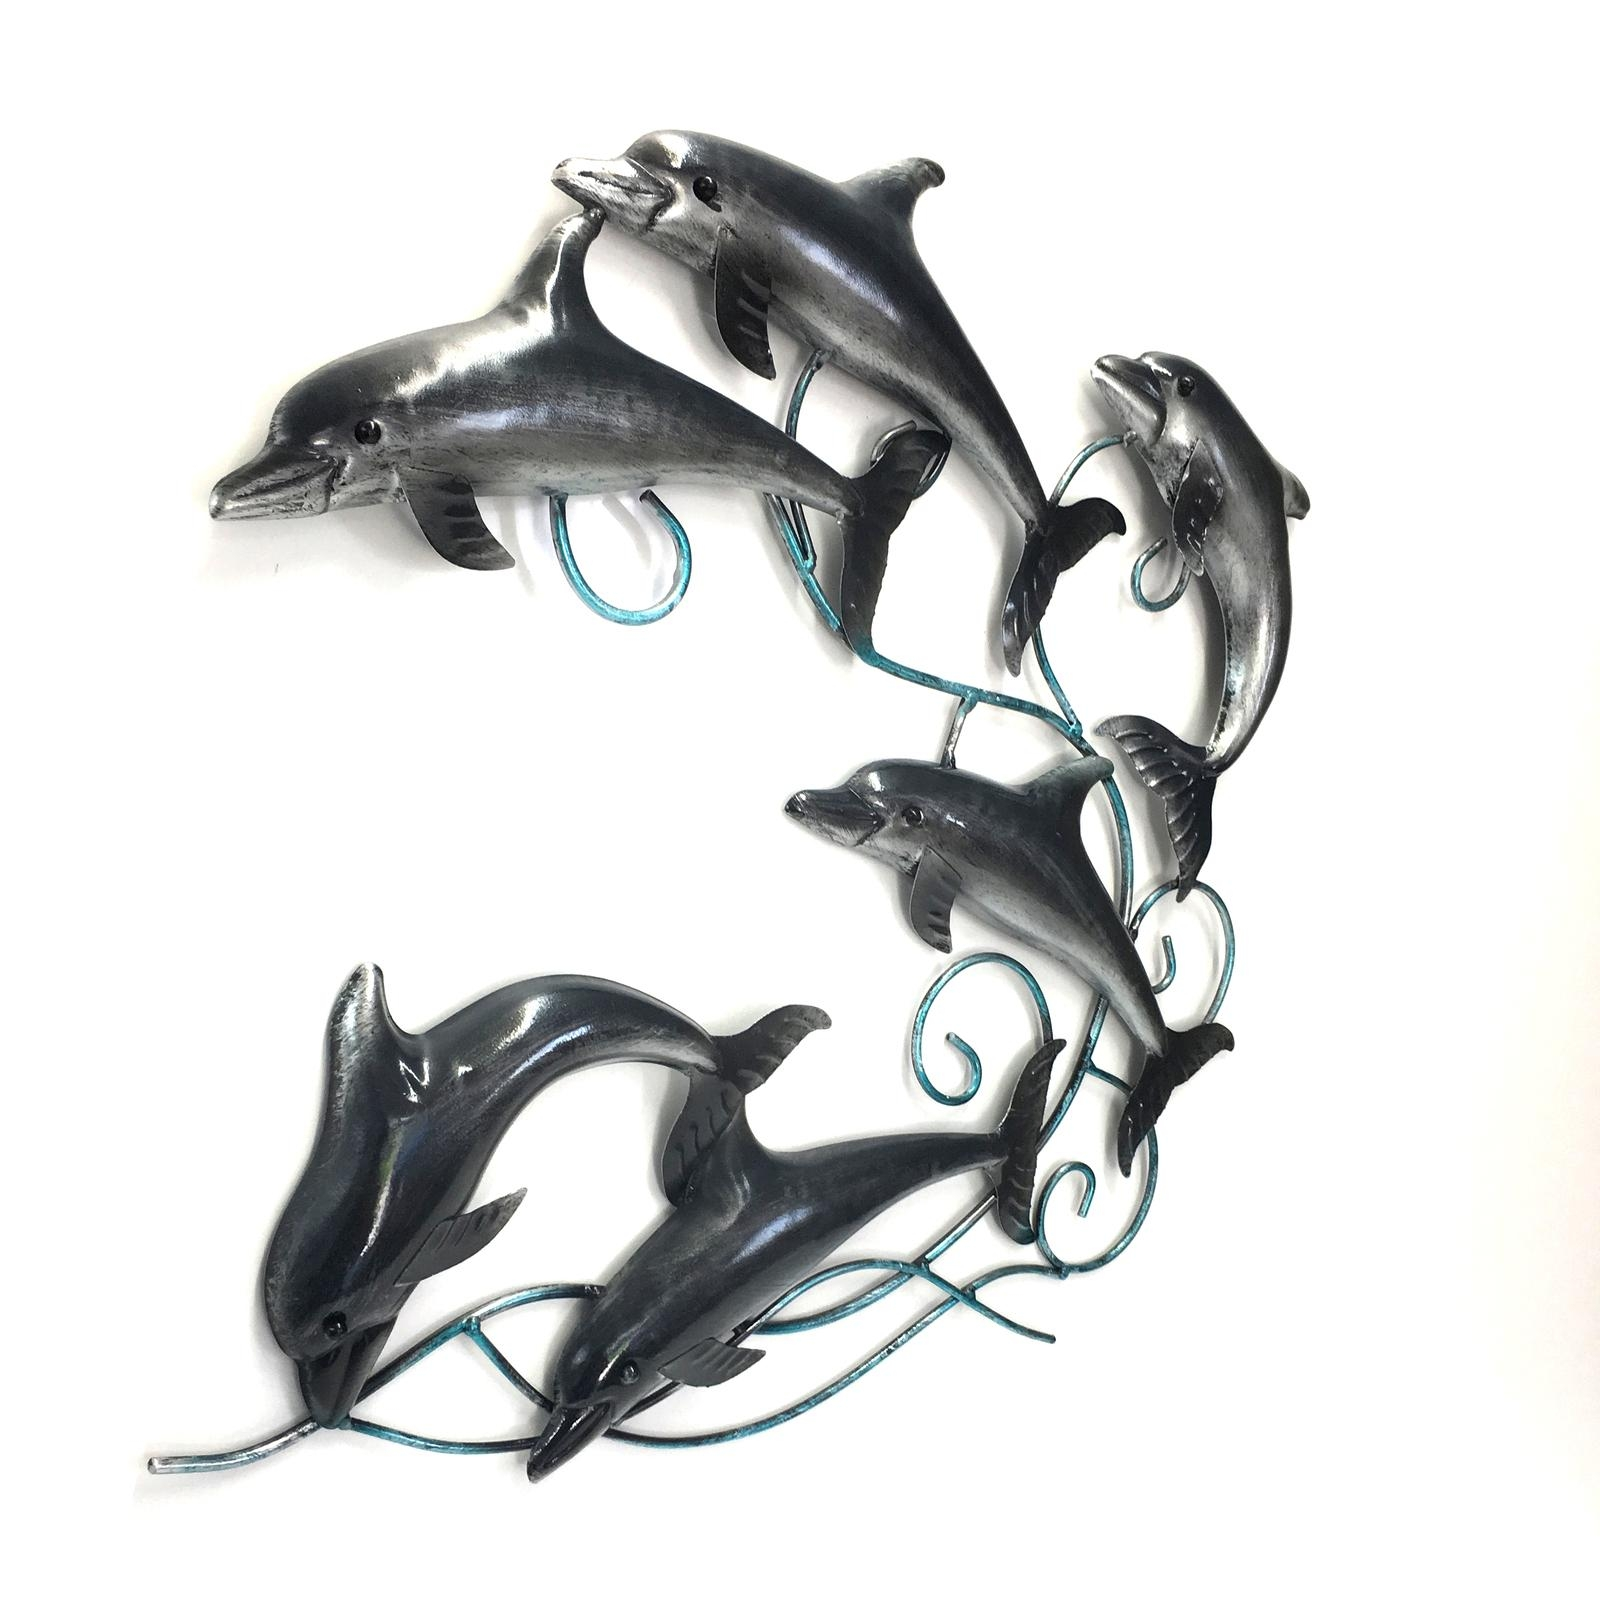 Dolphin Metal Wall Art Sculpture Hanging Garden Ornament Beach Big With Dolphin Metal Wall Art (View 13 of 20)